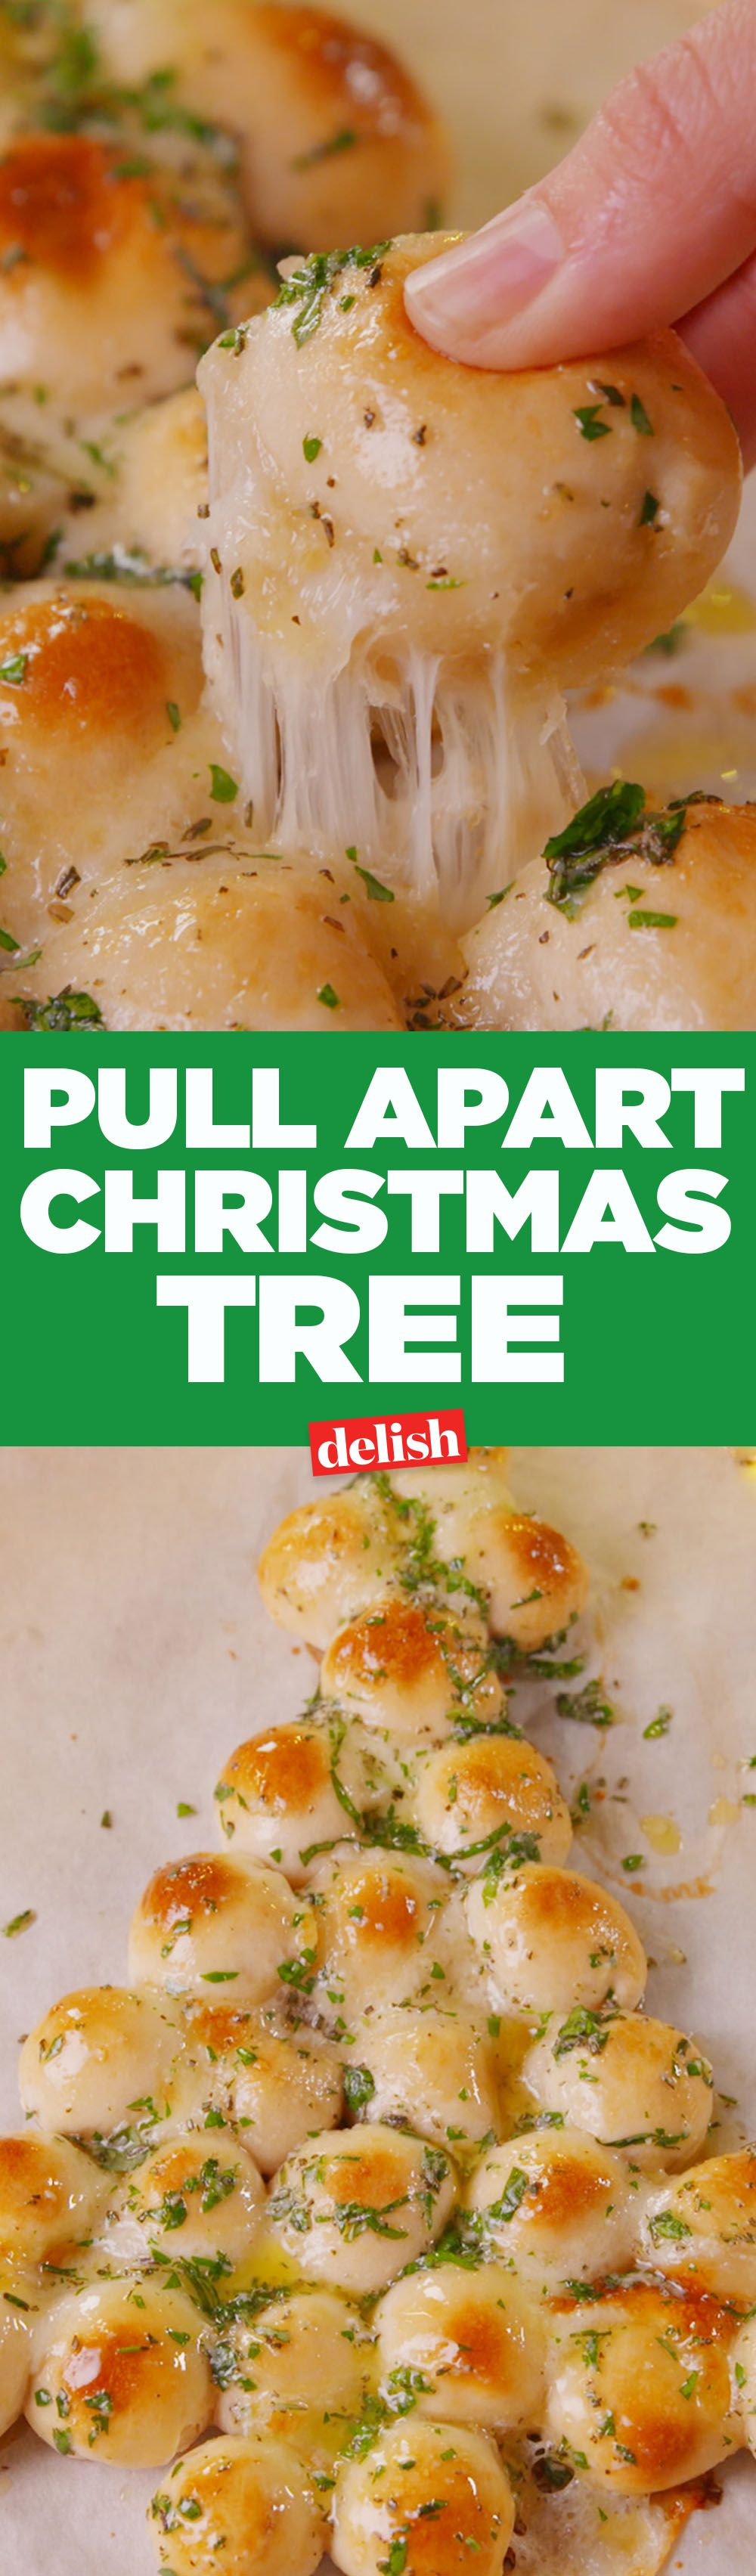 Pull-Apart Christmas Tree | Recipe | Christmas tree, Recipes and Food